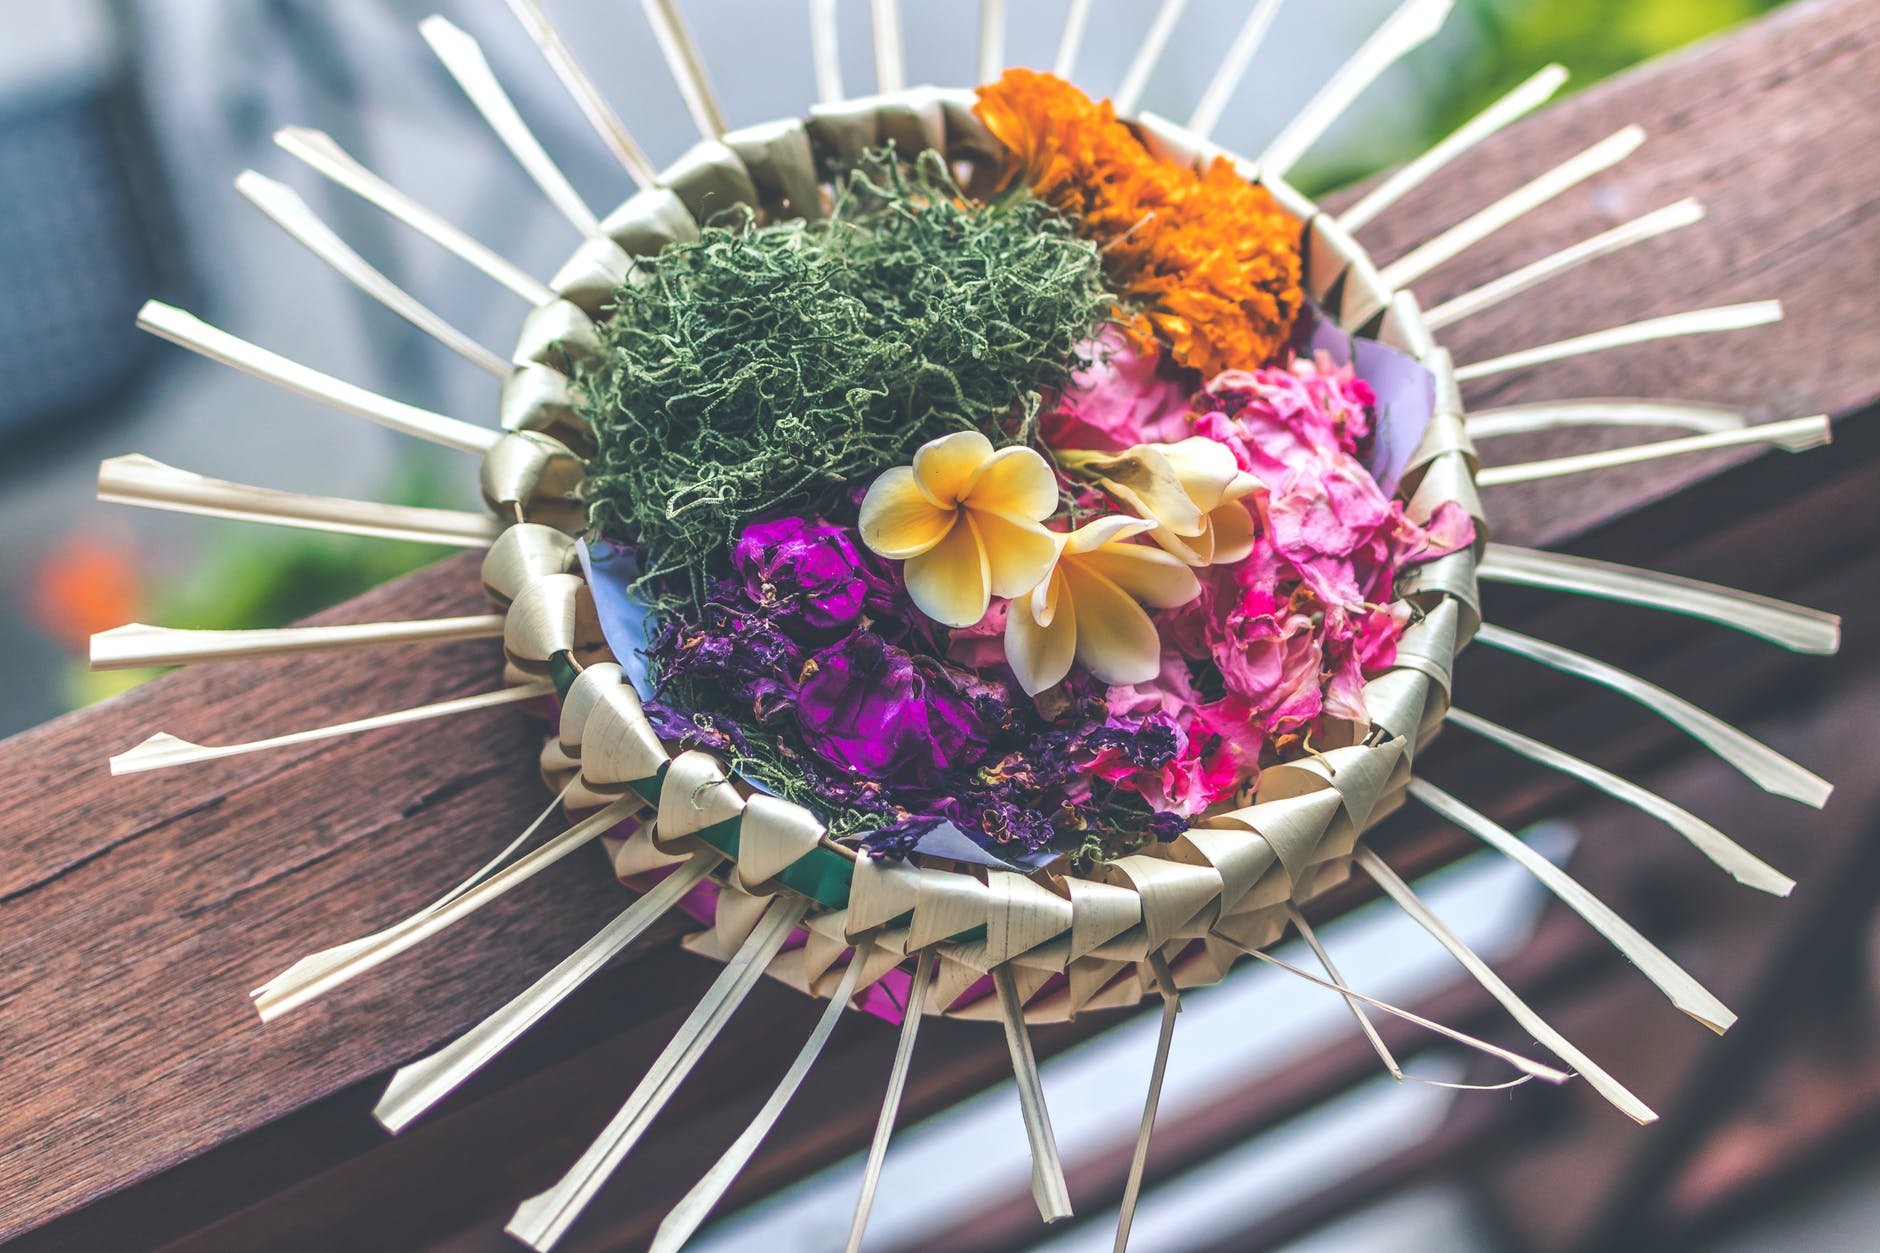 shallow focus photography of multicolored floral decor